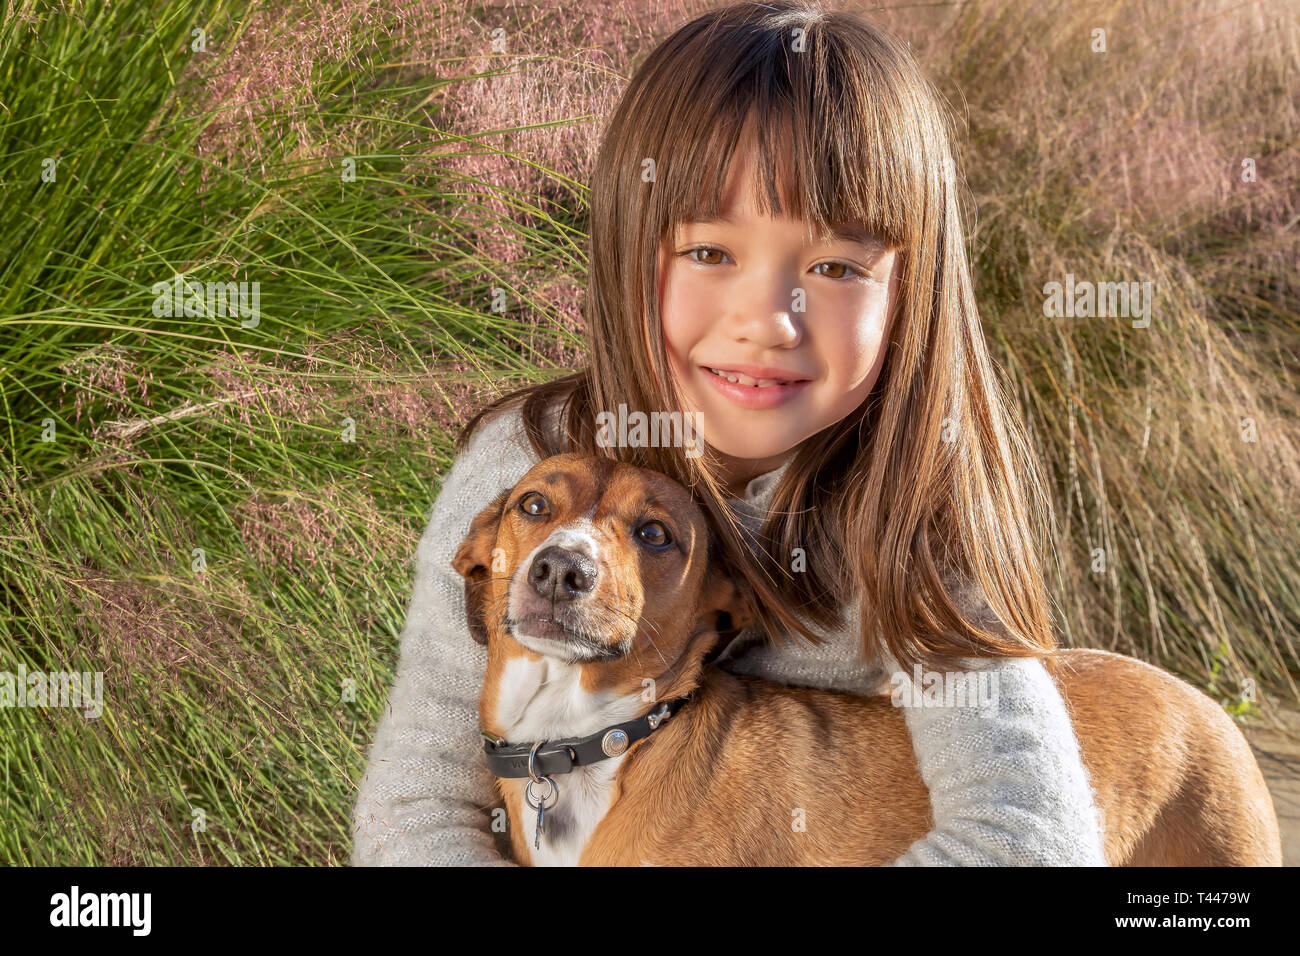 Seven year old girl with her dog in the park - Stock Image